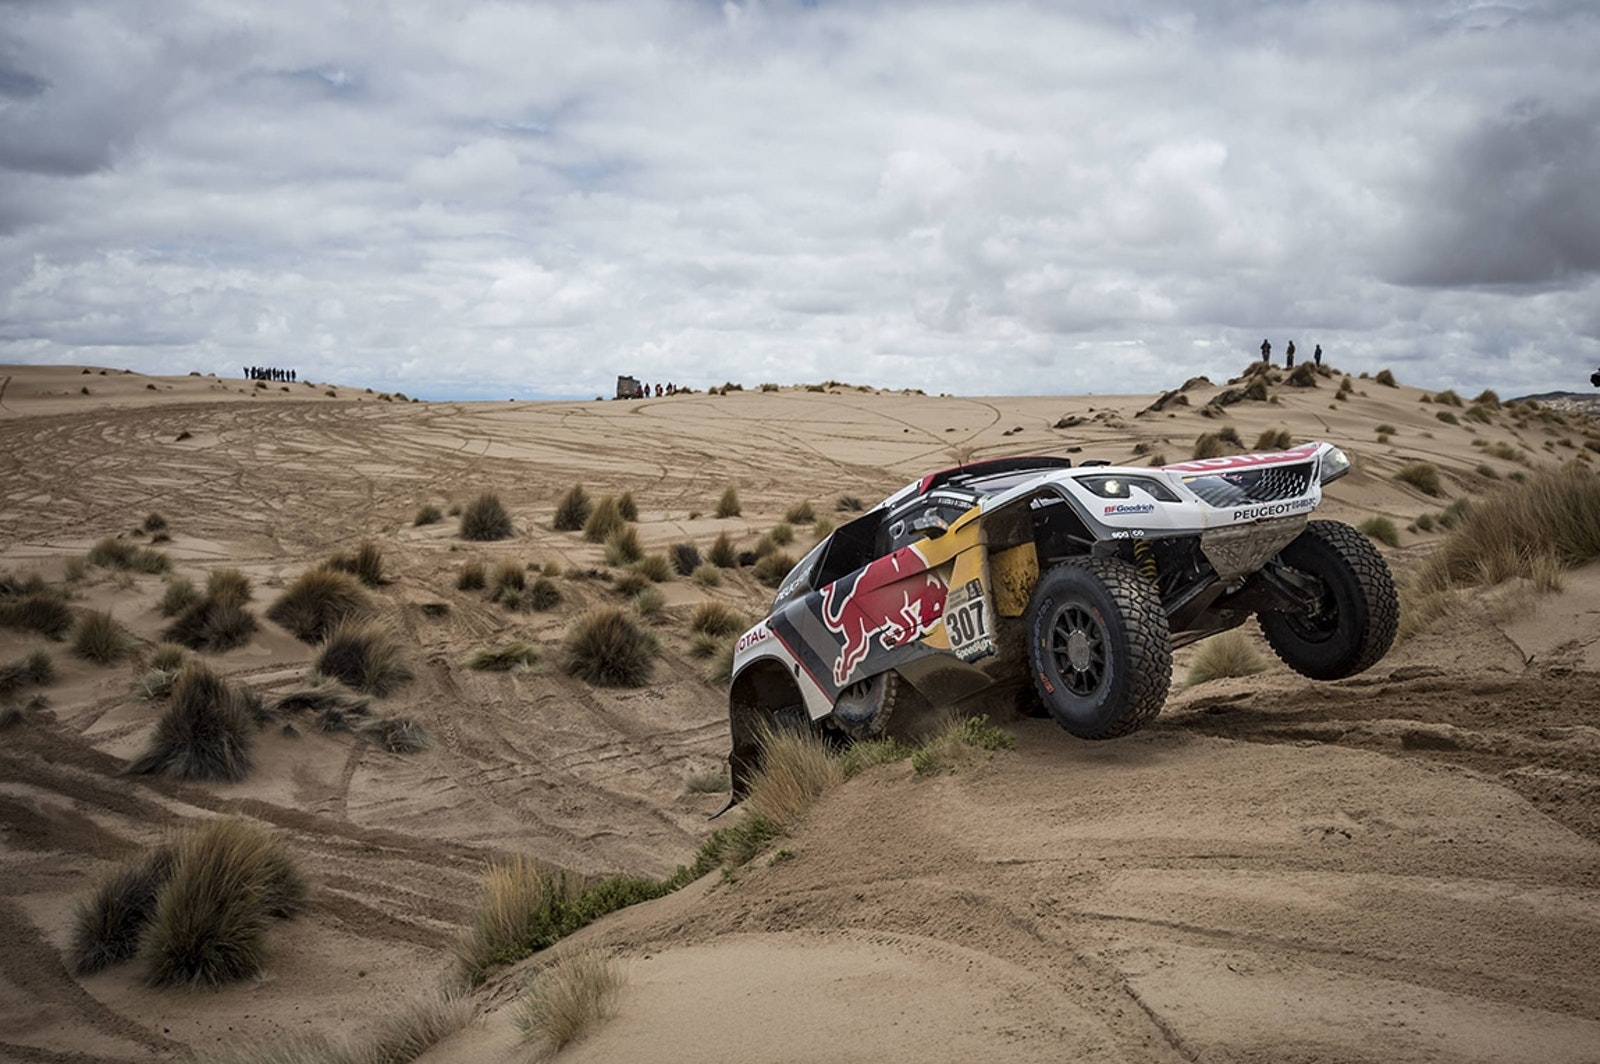 Cyril Despres (FRA) of Team Peugeot Total races during stage 07 of Rally Dakar 2017 from La Paz to Uyuni, Bolivia on January 09, 2017 // Marcelo Maragni/Red Bull Content Pool // P-20170109-01306 // Usage for editorial use only // Please go to www.redbullcontentpool.com for further information. //